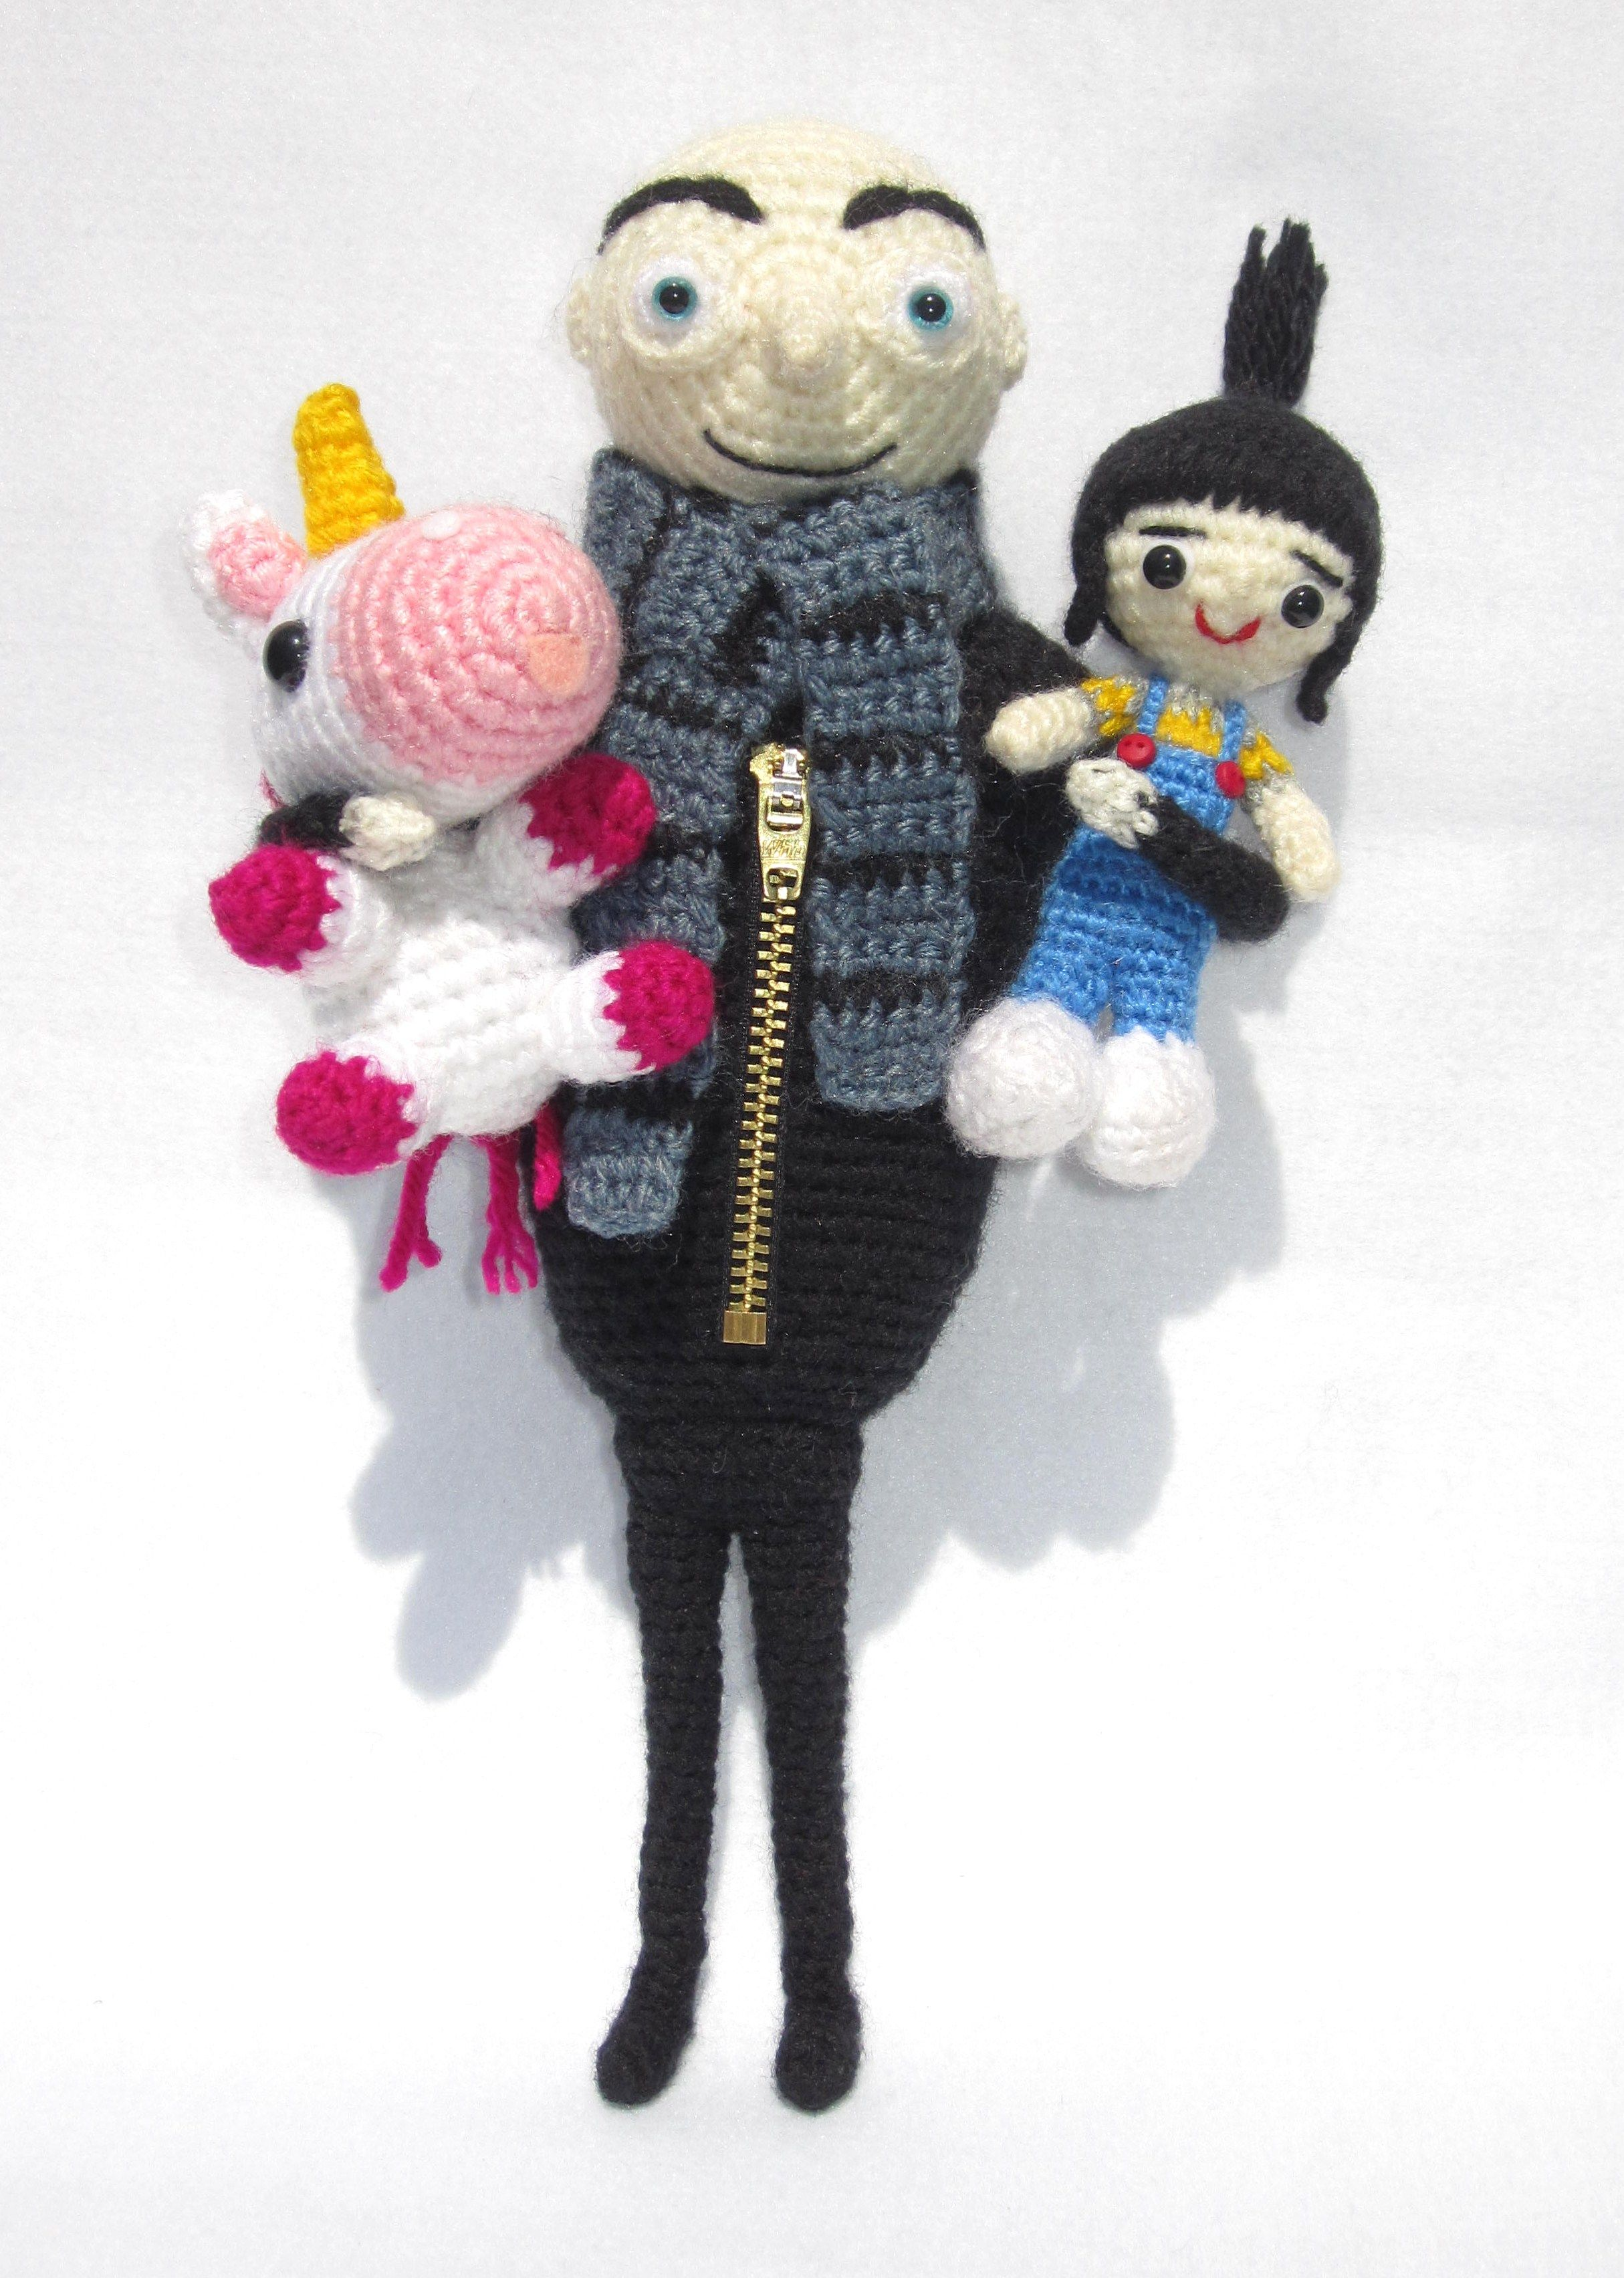 Despicable Me amigurumis | Amigurumis cuties Inspiration | Pinterest ...